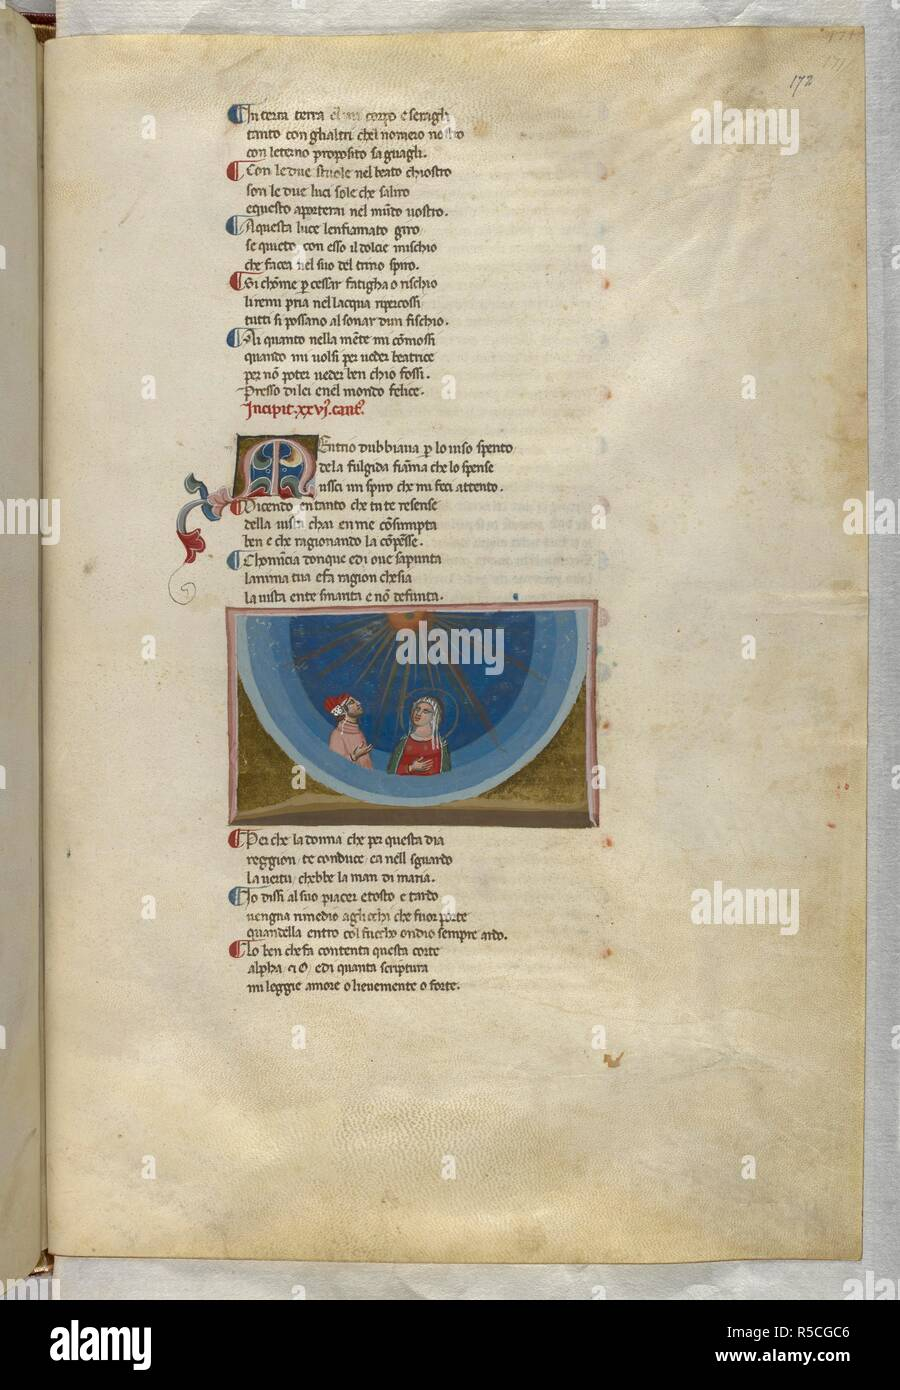 Paradiso : Dante and Beatrice look up to heaven. Dante Alighieri, Divina Commedia ( The Divine Comedy ), with a commentary in Latin. 1st half of the 14th century. Source: Egerton 943, f.172. Language: Italian, Latin. - Stock Image